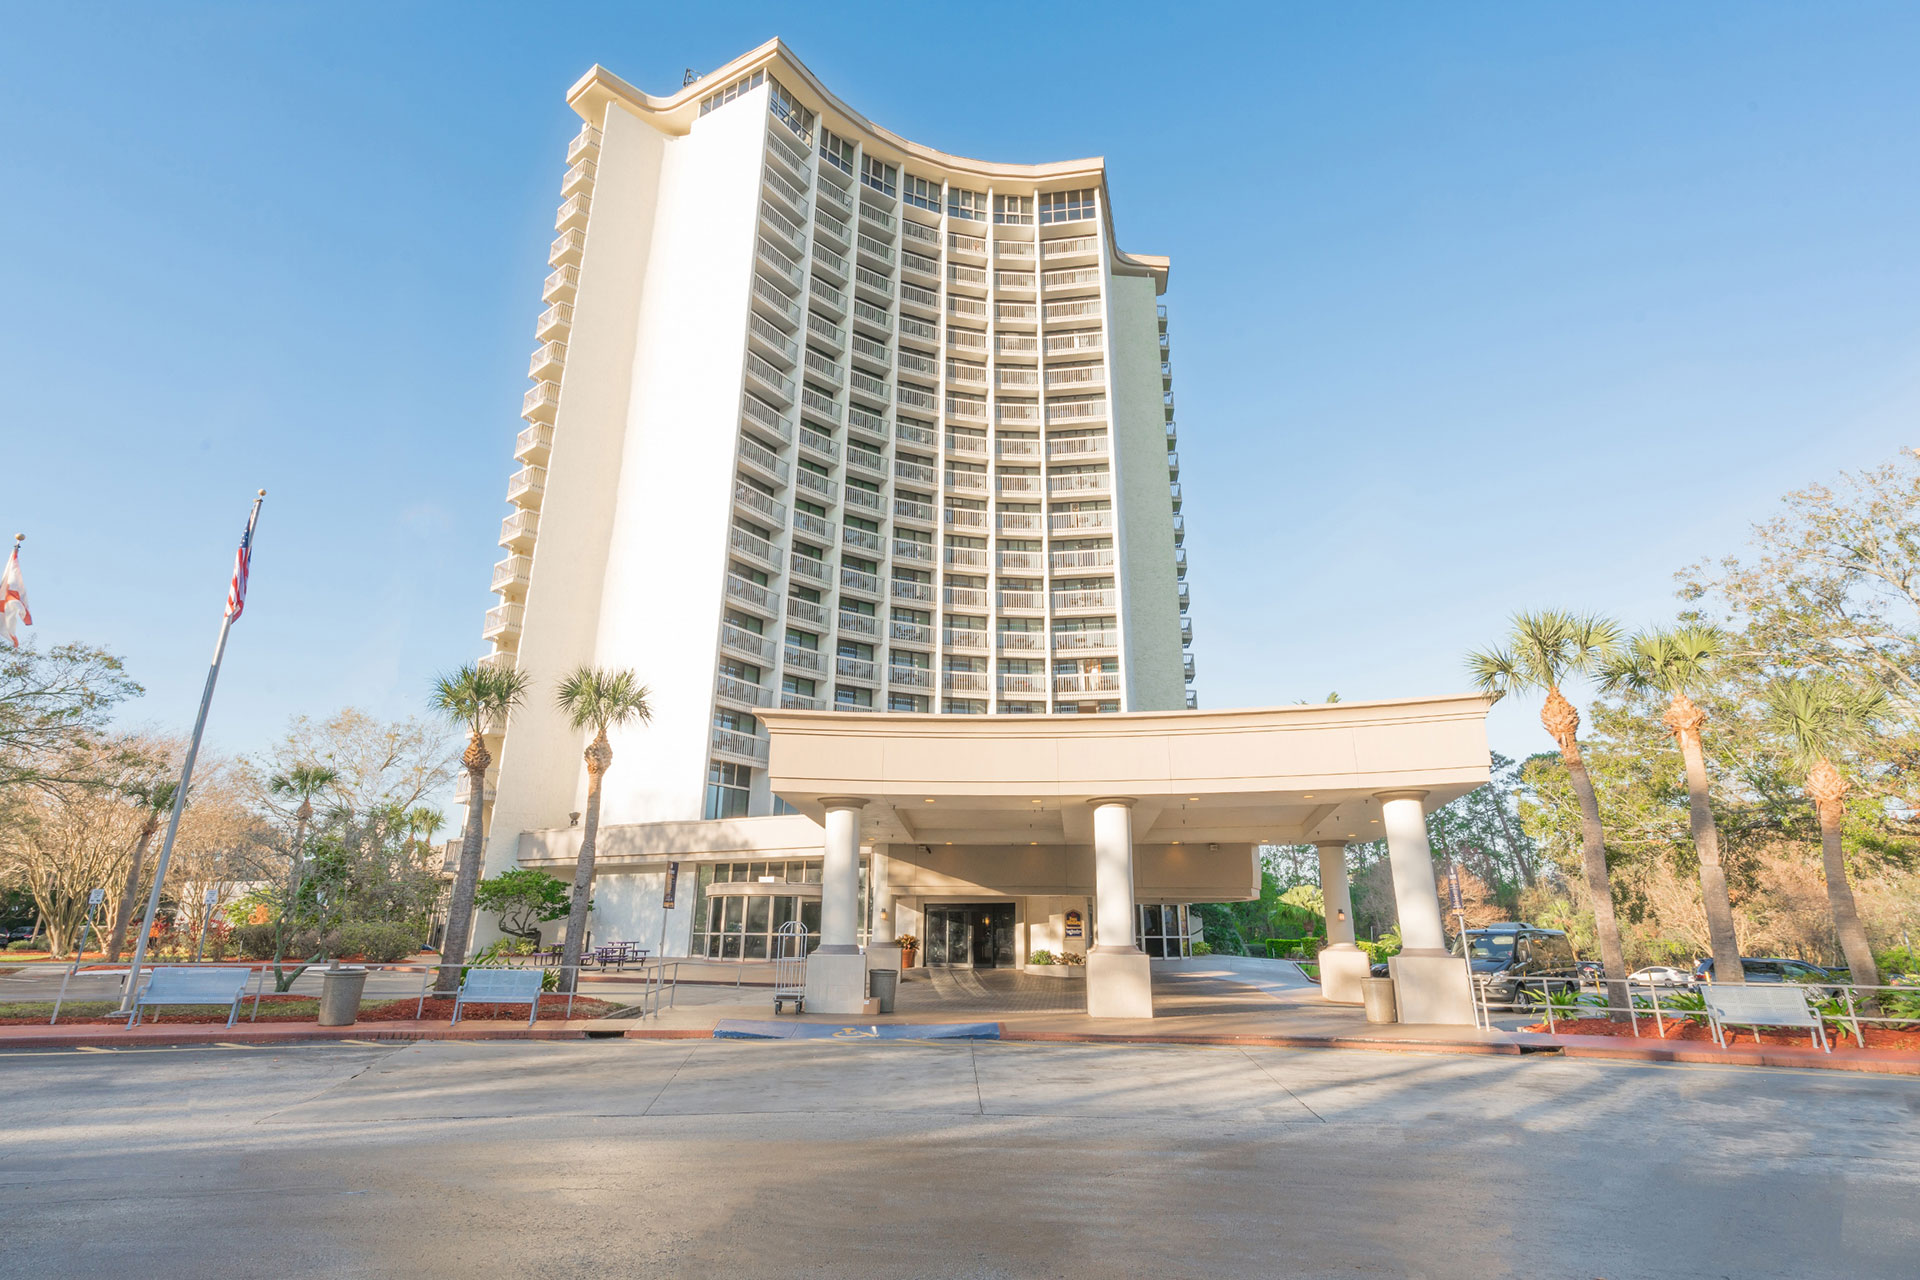 BEST WESTERN Lake Buena Vista Resort Hotel; Courtesy of BEST WESTERN Lake Buena Vista Resort Hotel